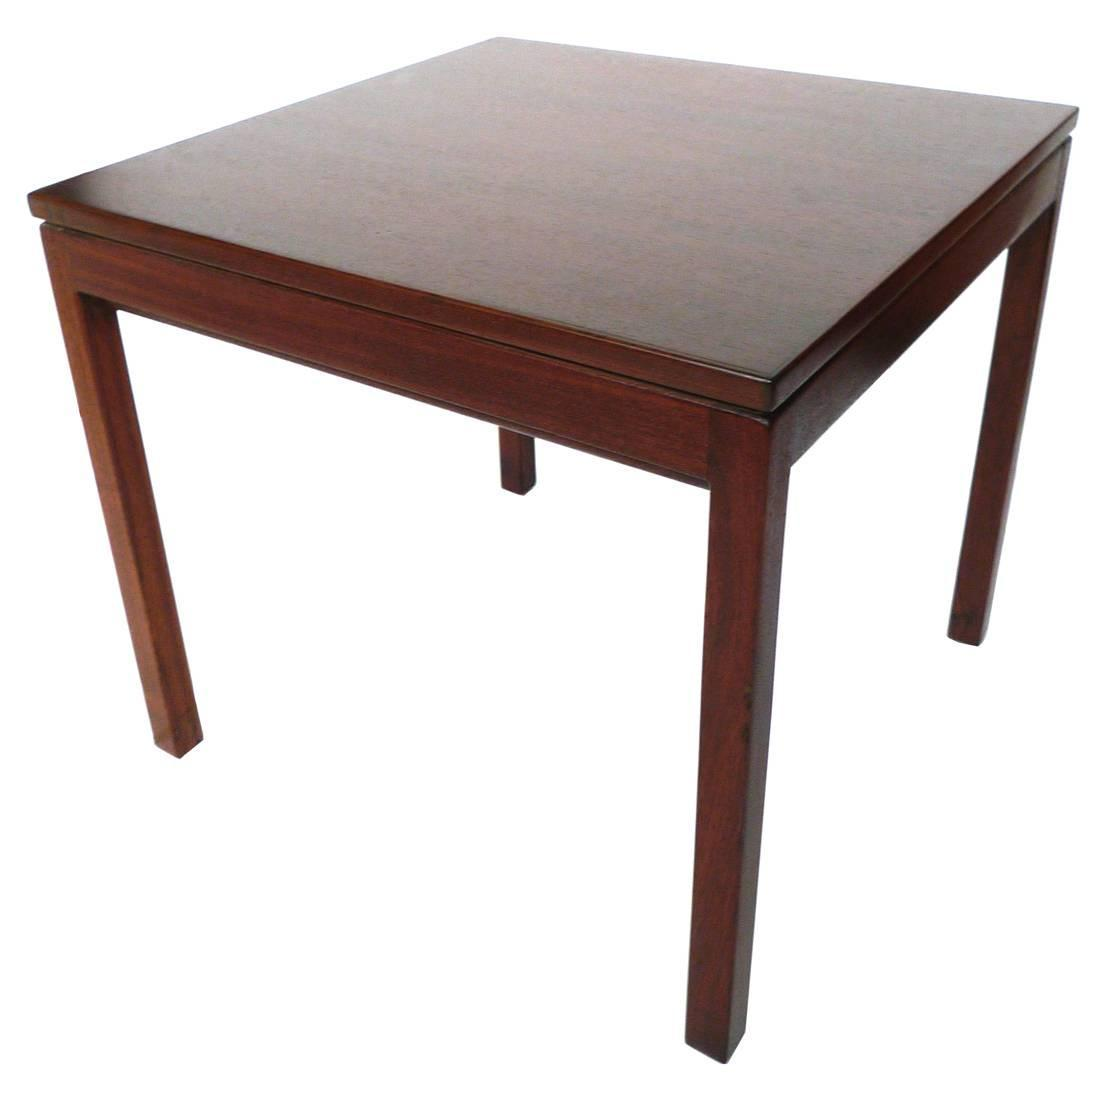 Danish Modern Walnut Side Table By Jens Risom At 1stdibs